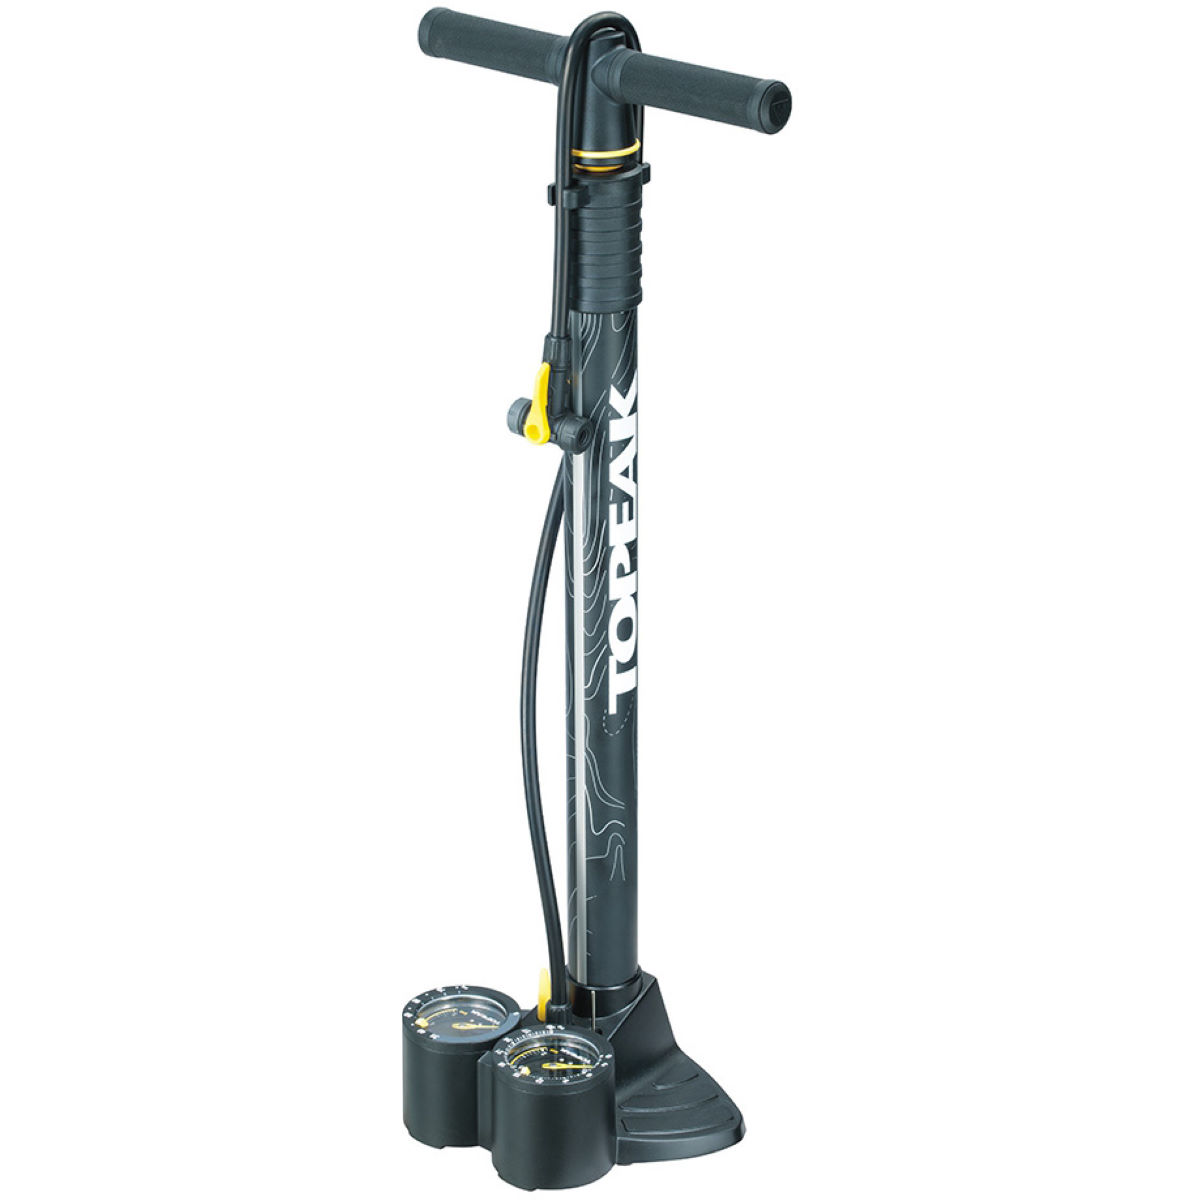 Topeak Joe Blow Dualie Track Pump - Bombas de pie